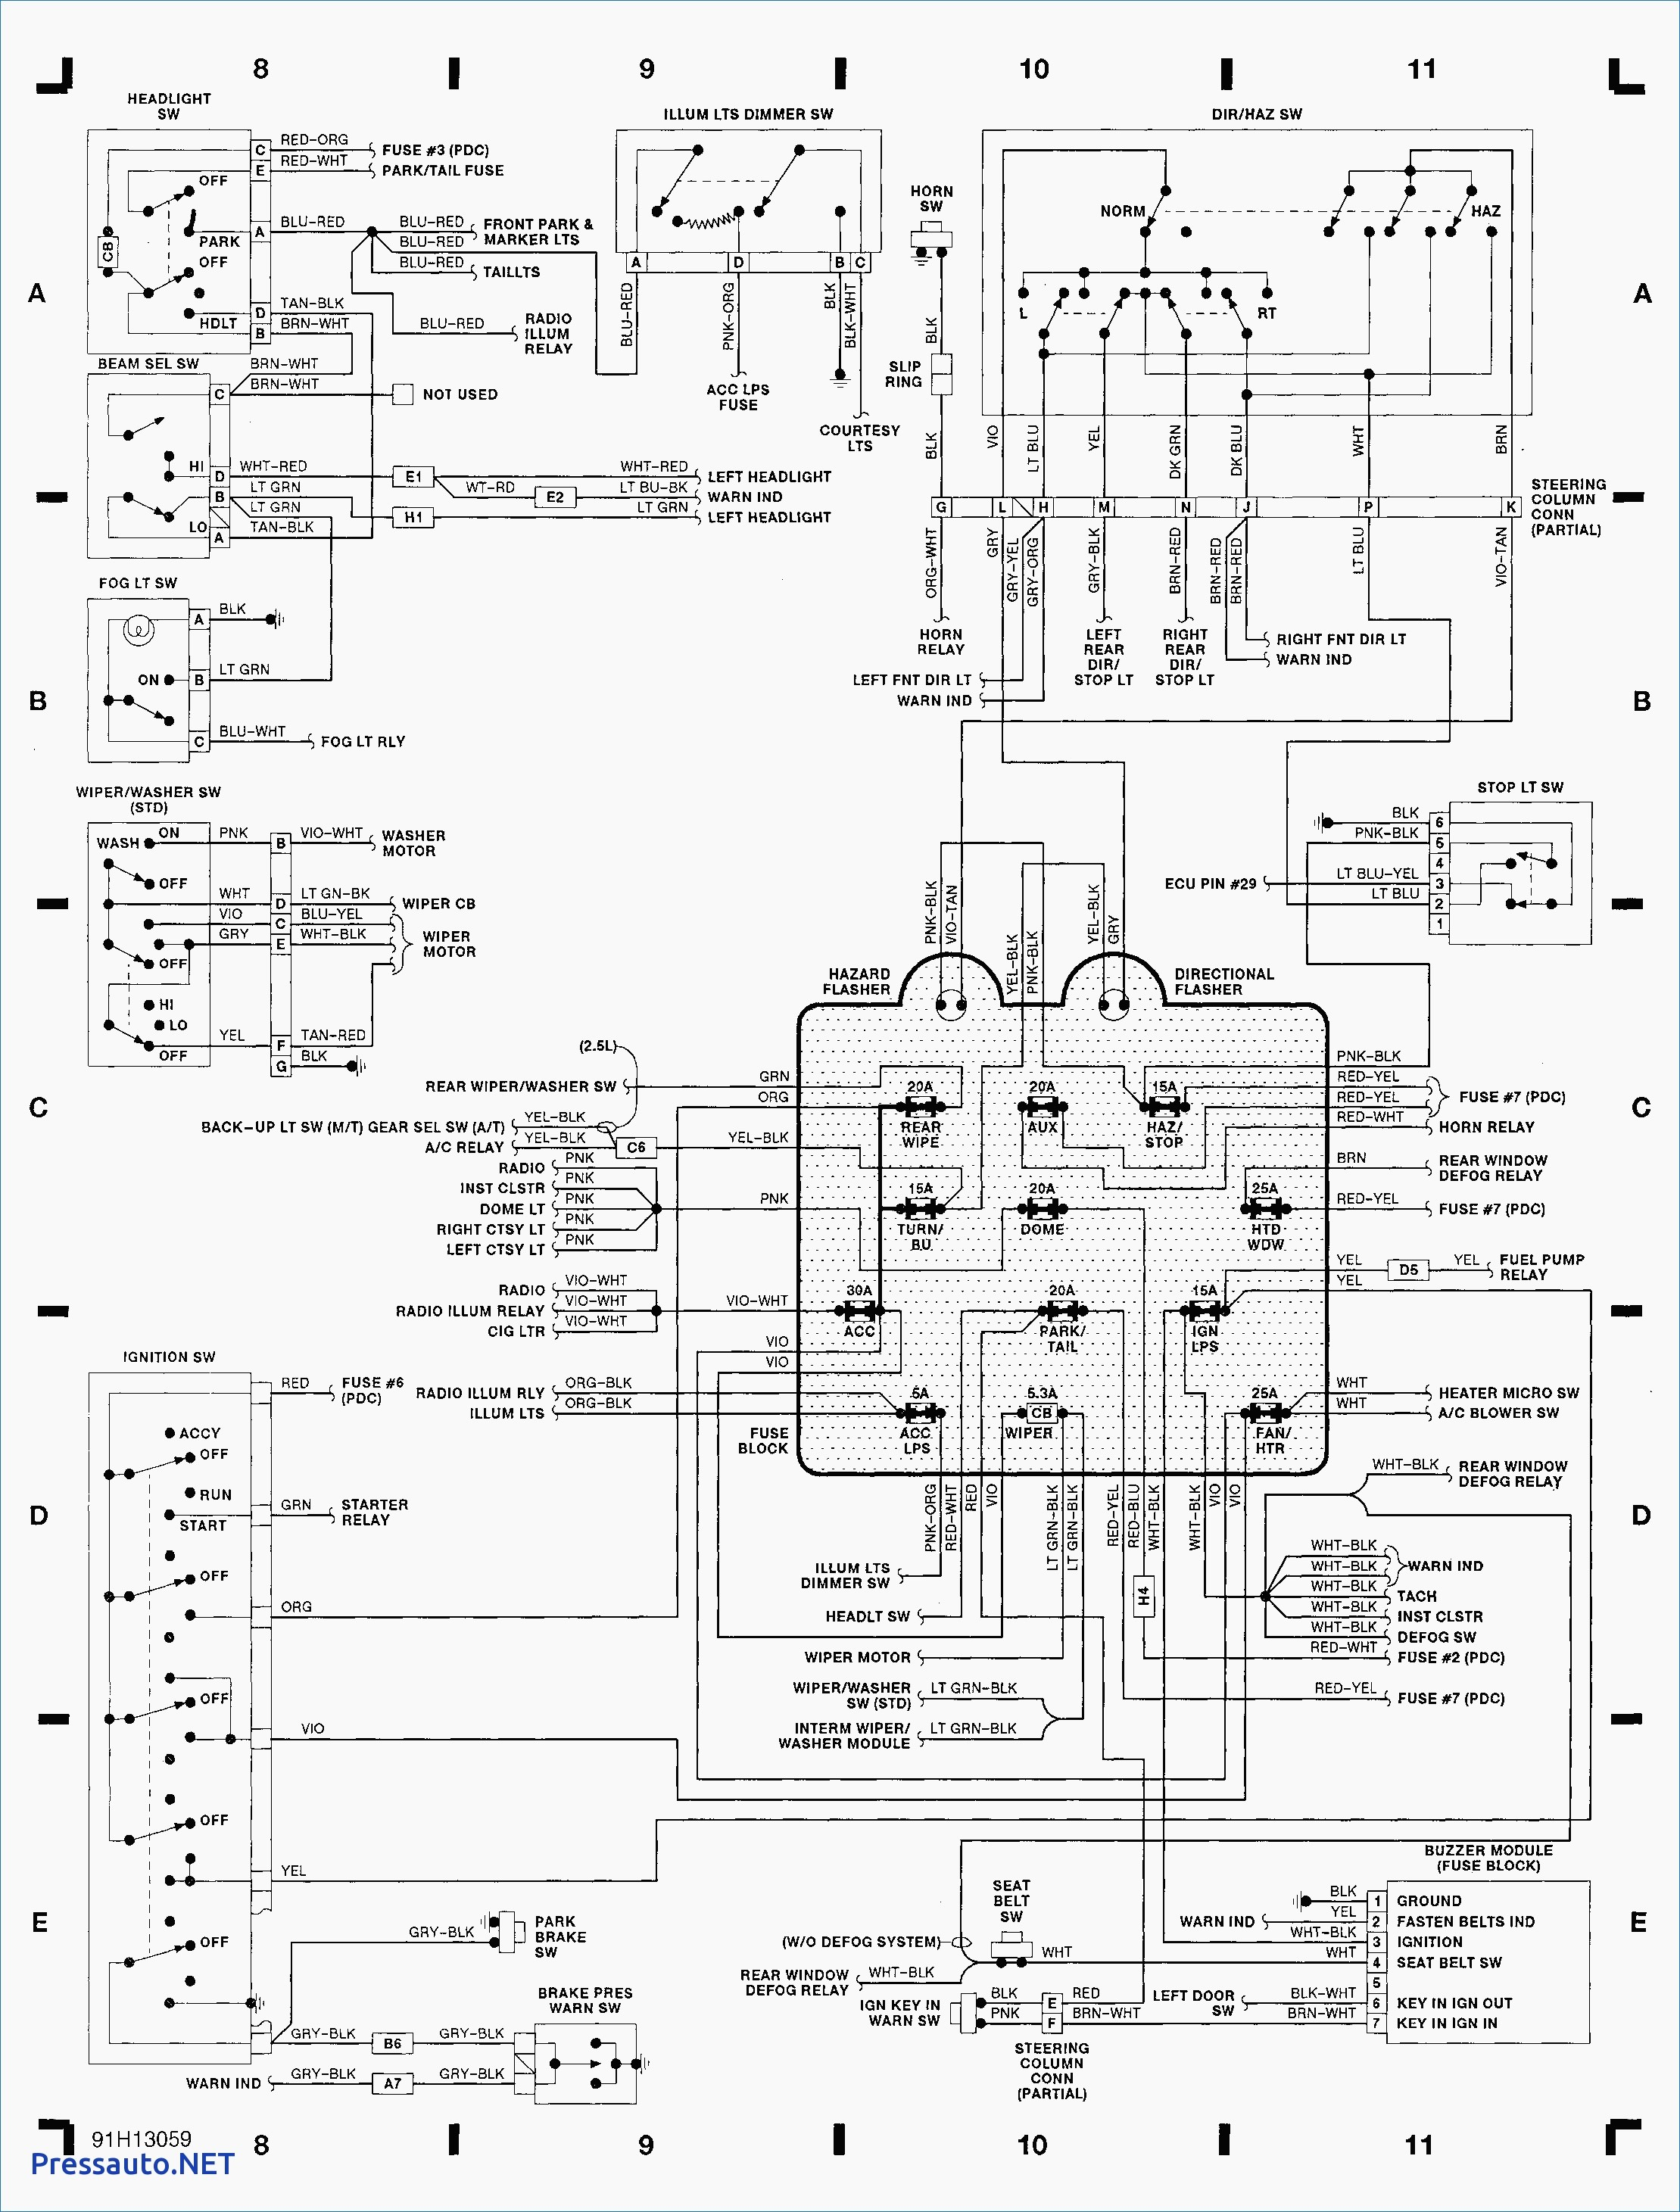 DIAGRAM] 2007 Jeepmander Radio Wiring Diagram FULL Version HD Quality Wiring  Diagram - DIAGRAMMYCASE.COIFFURE-A-DOMICILE-67.FRdiagrammycase.coiffure-a-domicile-67.fr